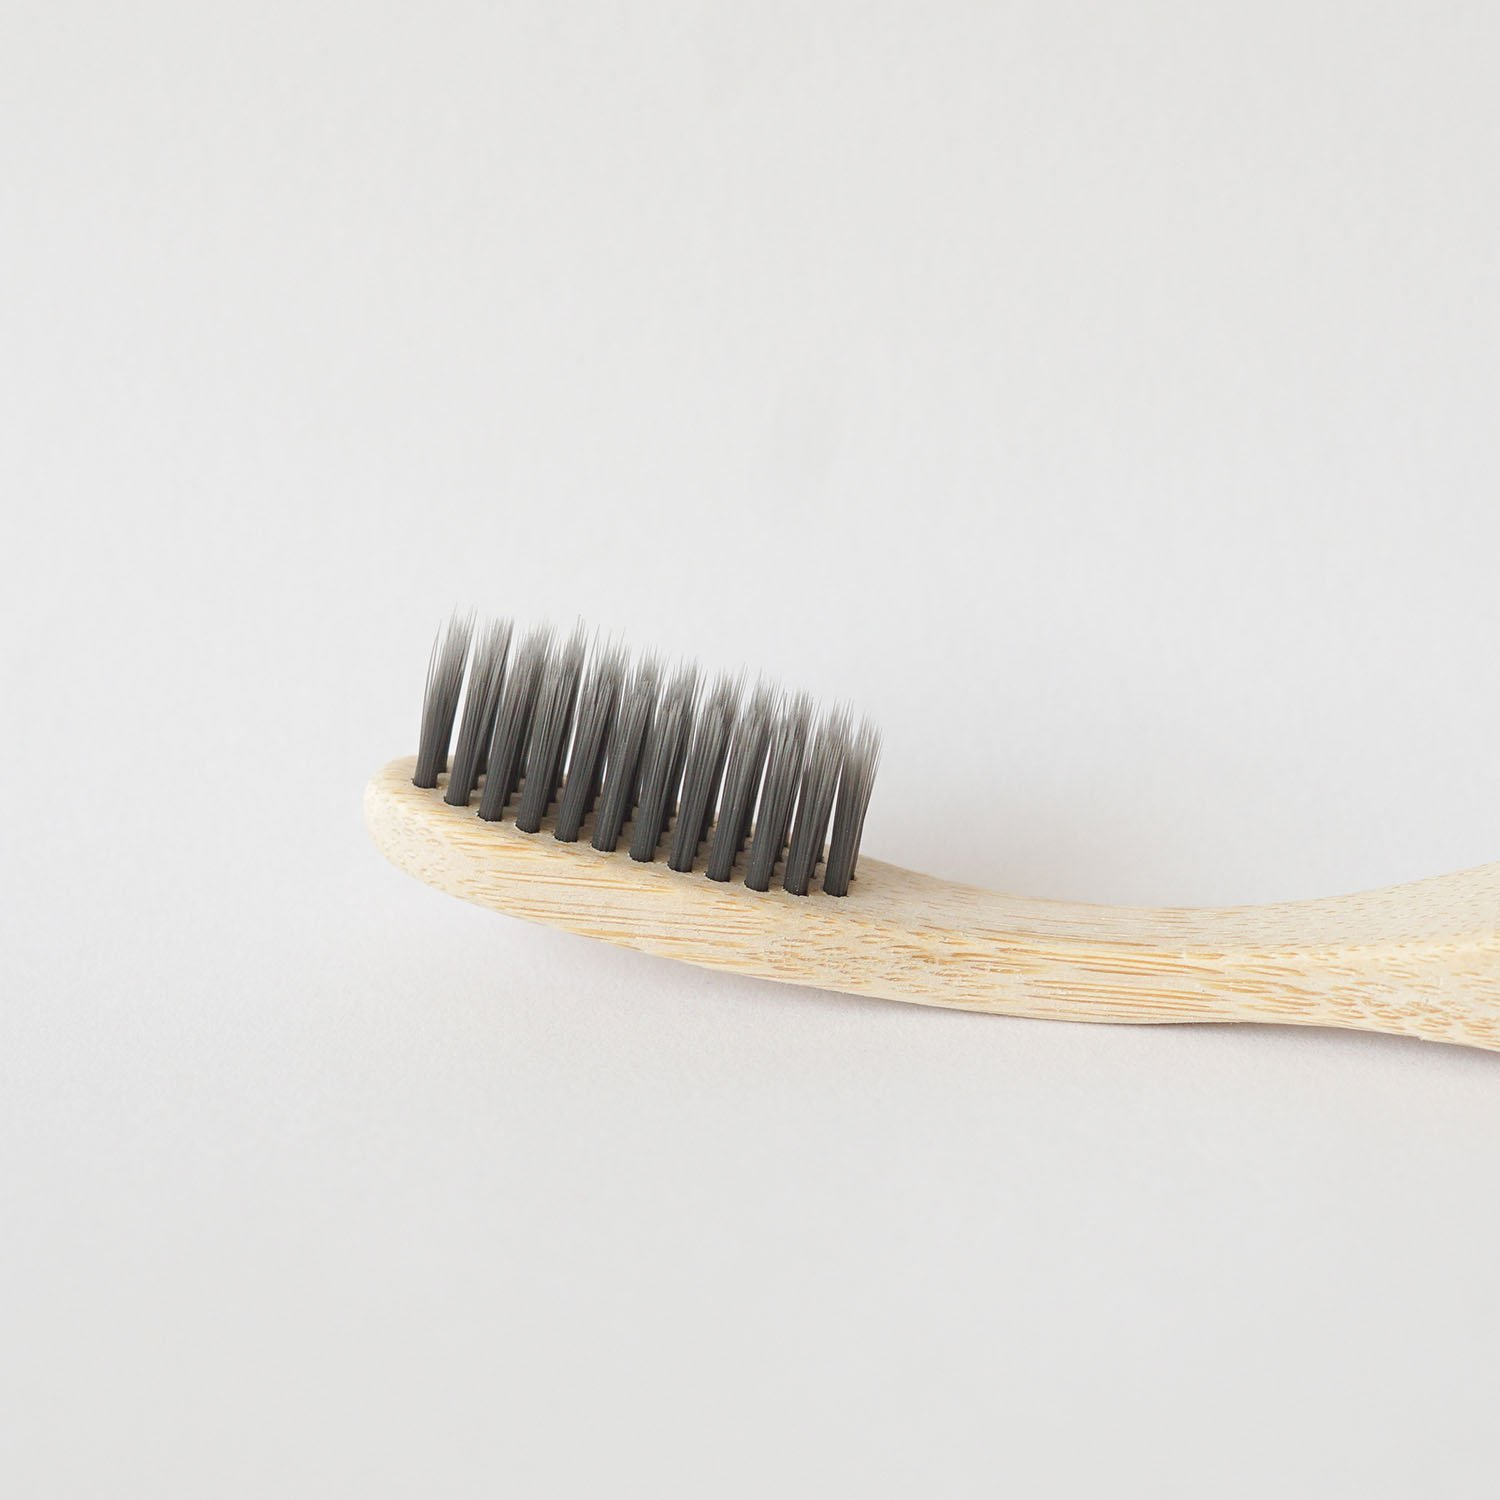 4 Pack charcoal infused bamboo toothbrushes